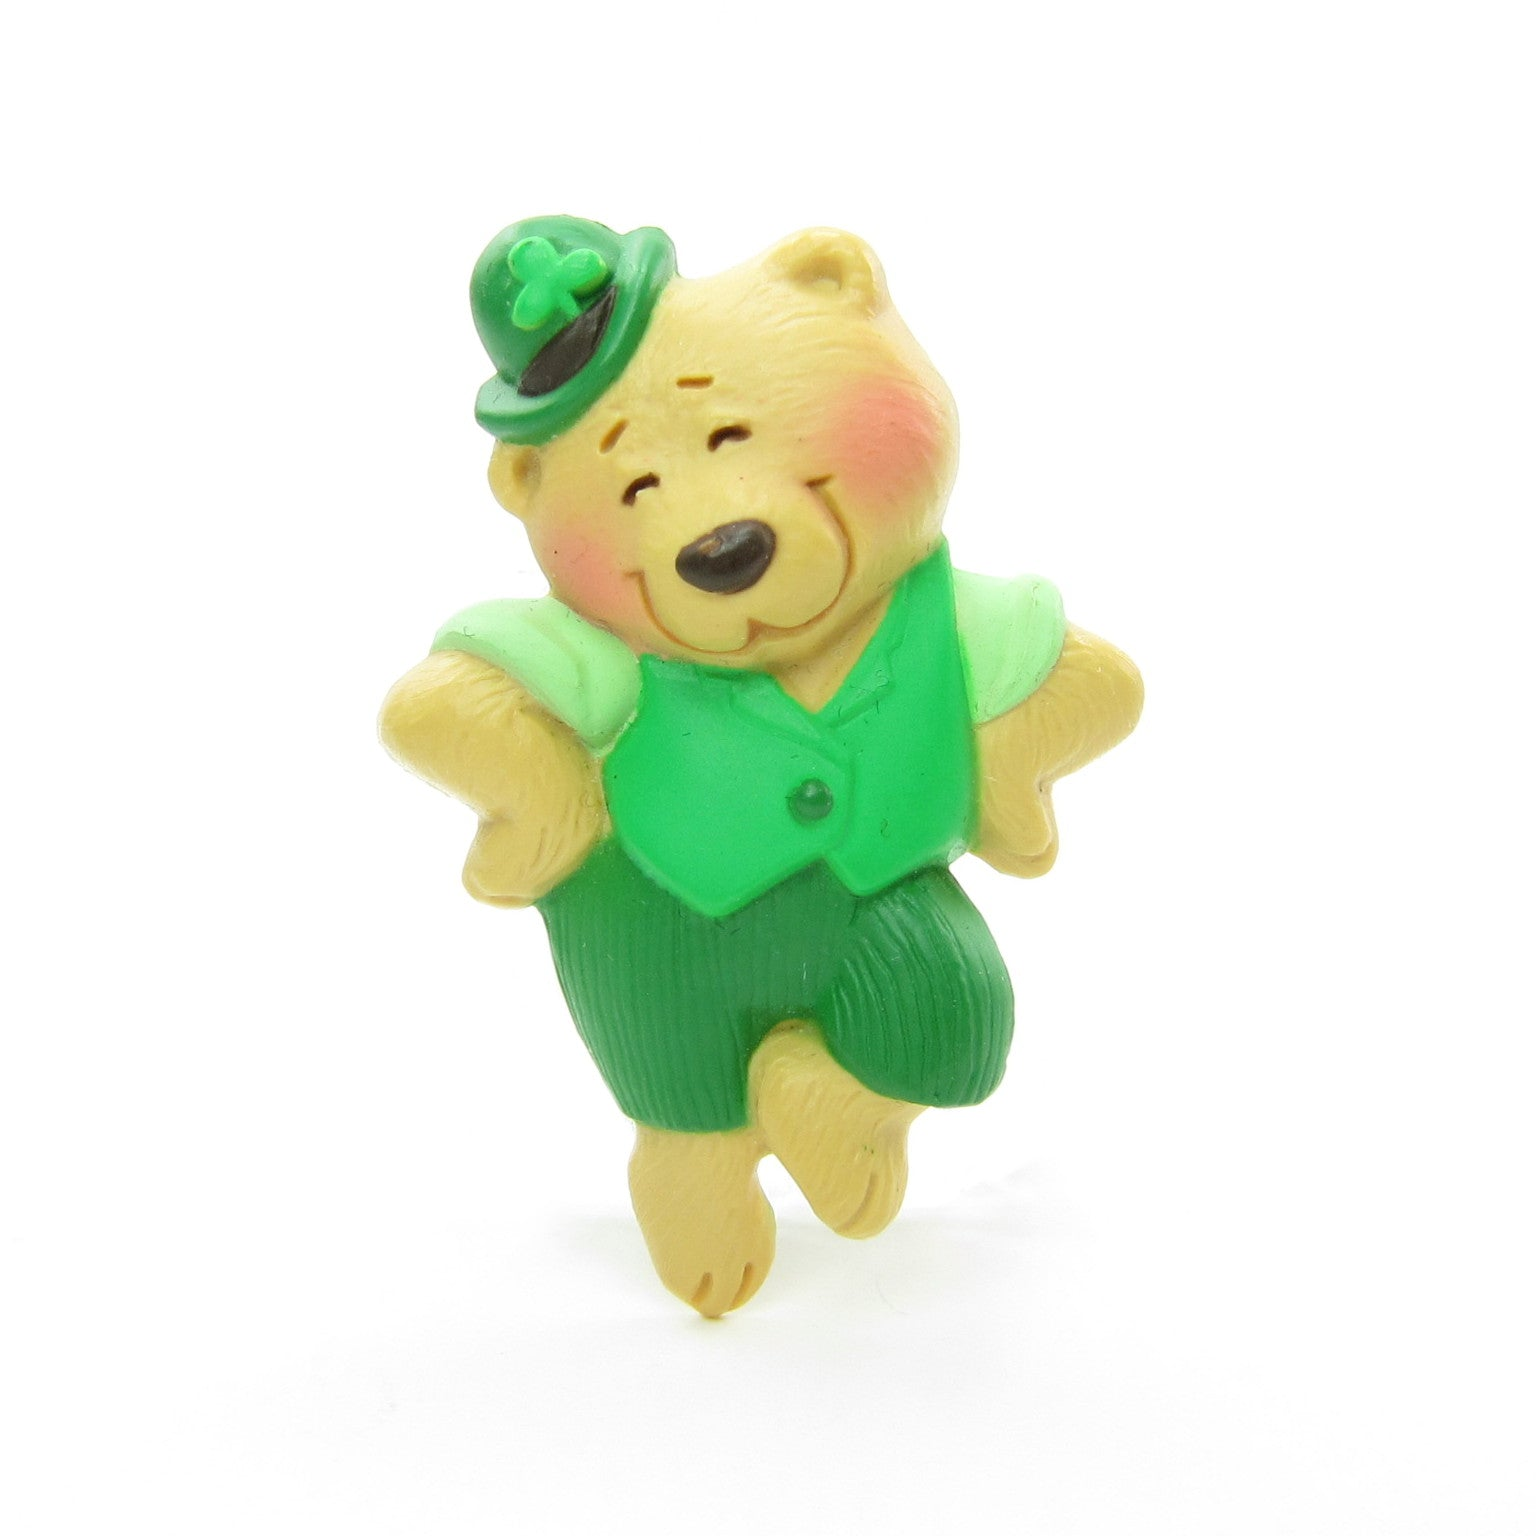 Hallmark St. Patrick's Day teddy bear pin